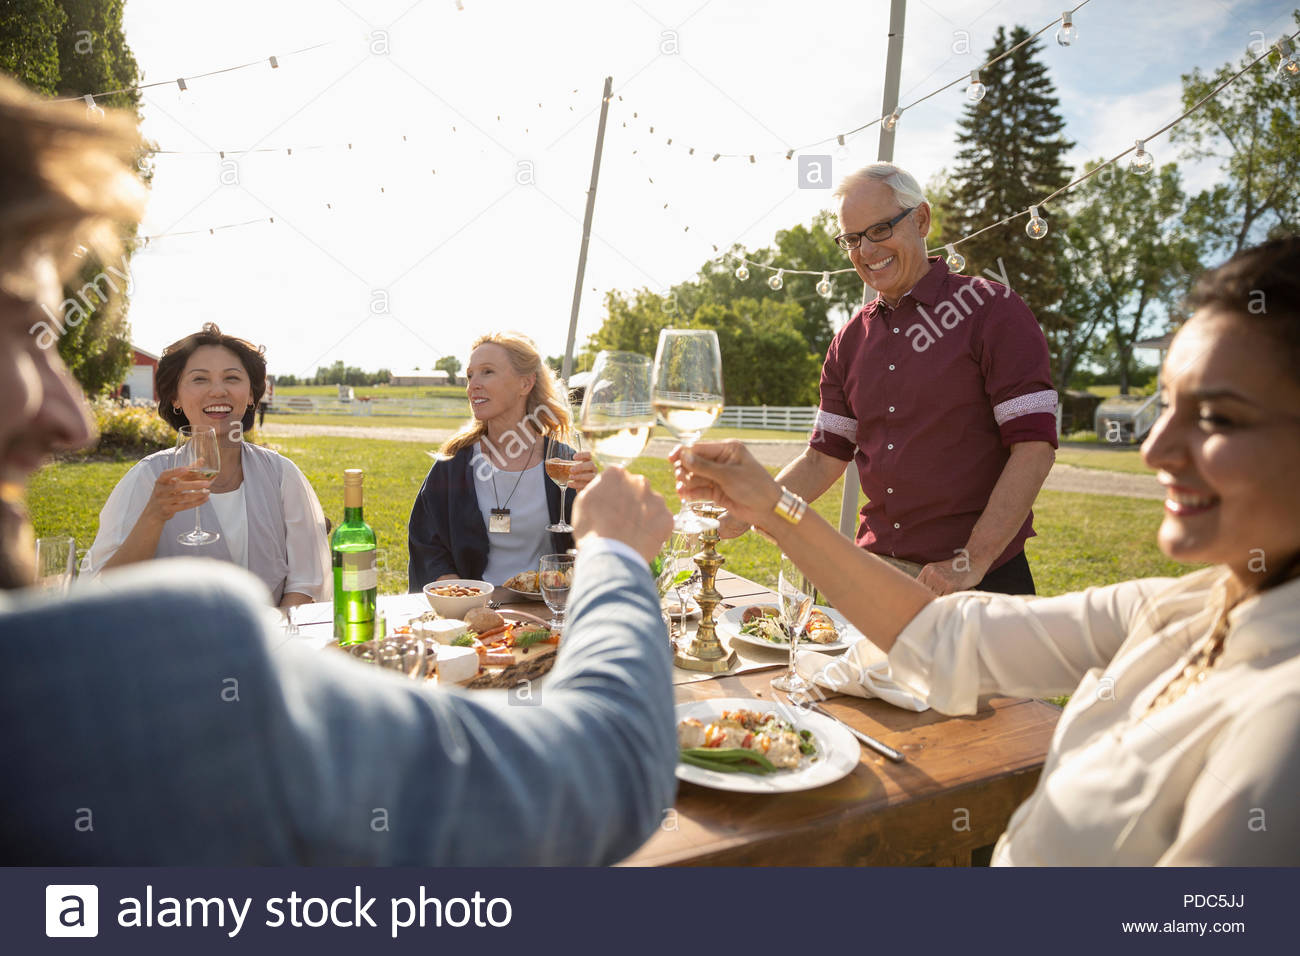 Friends celebrating, toasting wine glasses at sunny garden party table - Stock Image